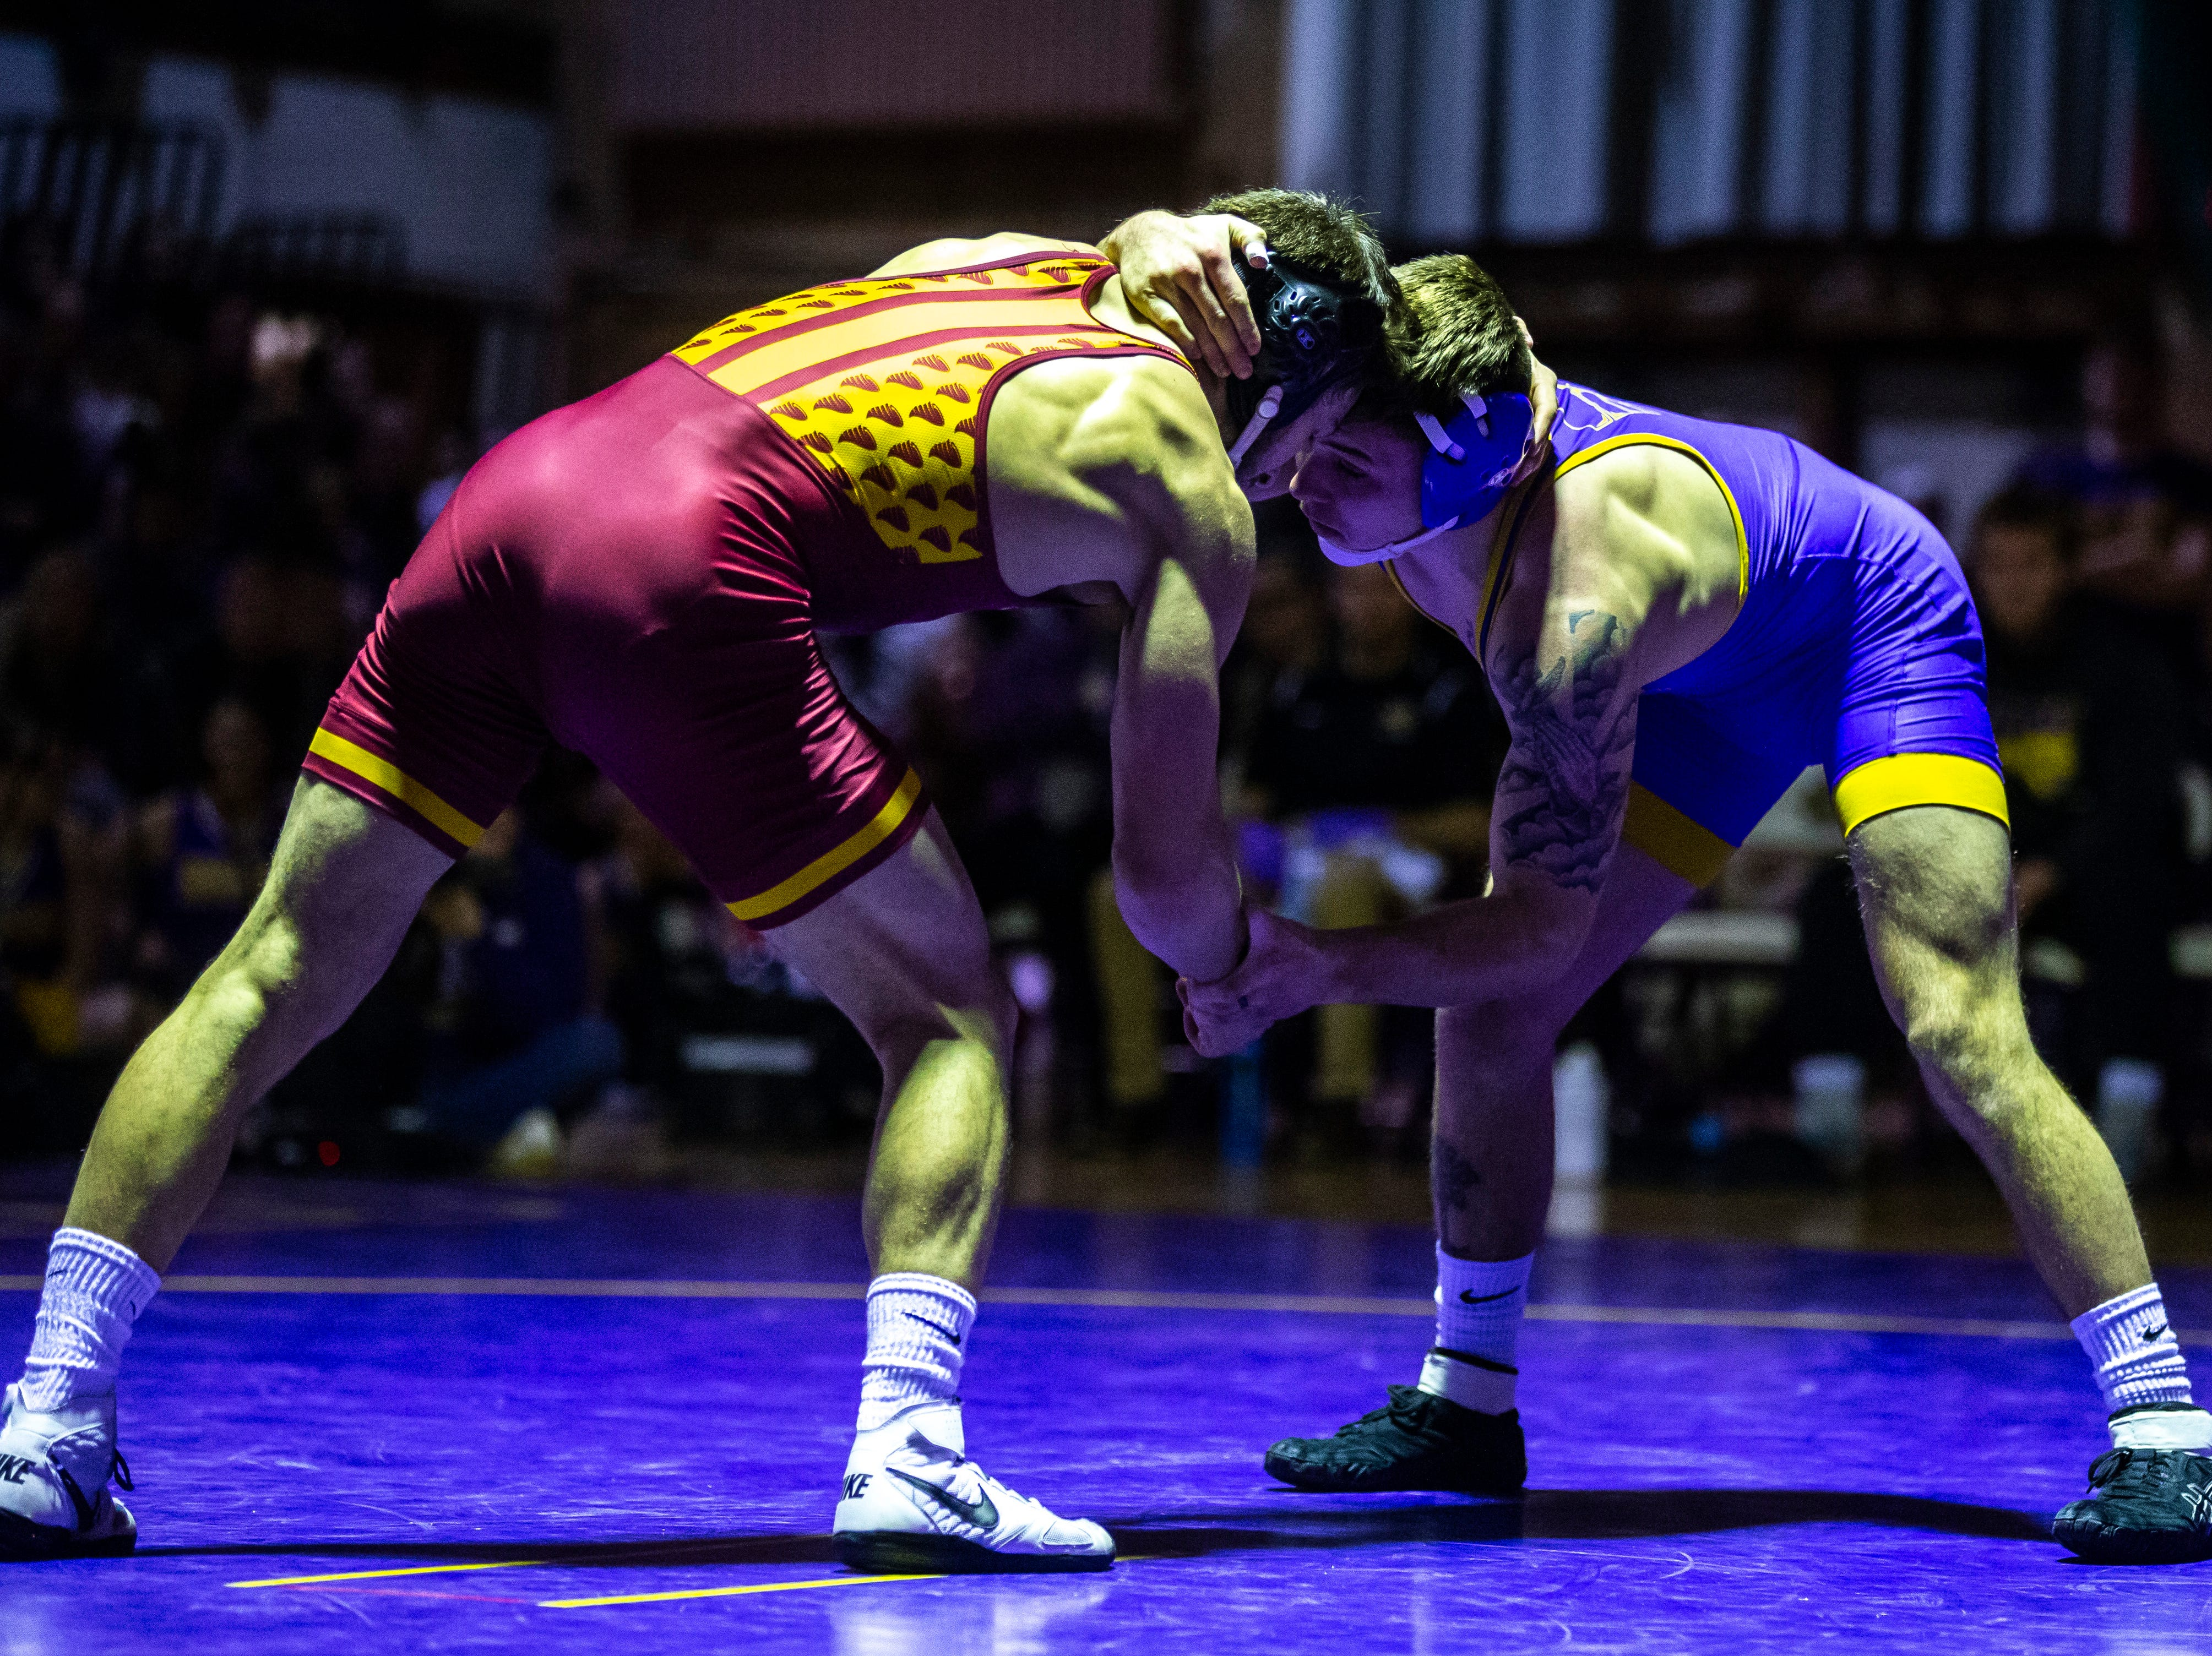 Northern Iowa's Josh Alber wrestles Iowa State's Ian Parker at 141 during a NCAA Big 12 wrestling dual on Thursday, Feb. 21, 2019 at the West Gymnasium in Cedar Falls, Iowa.